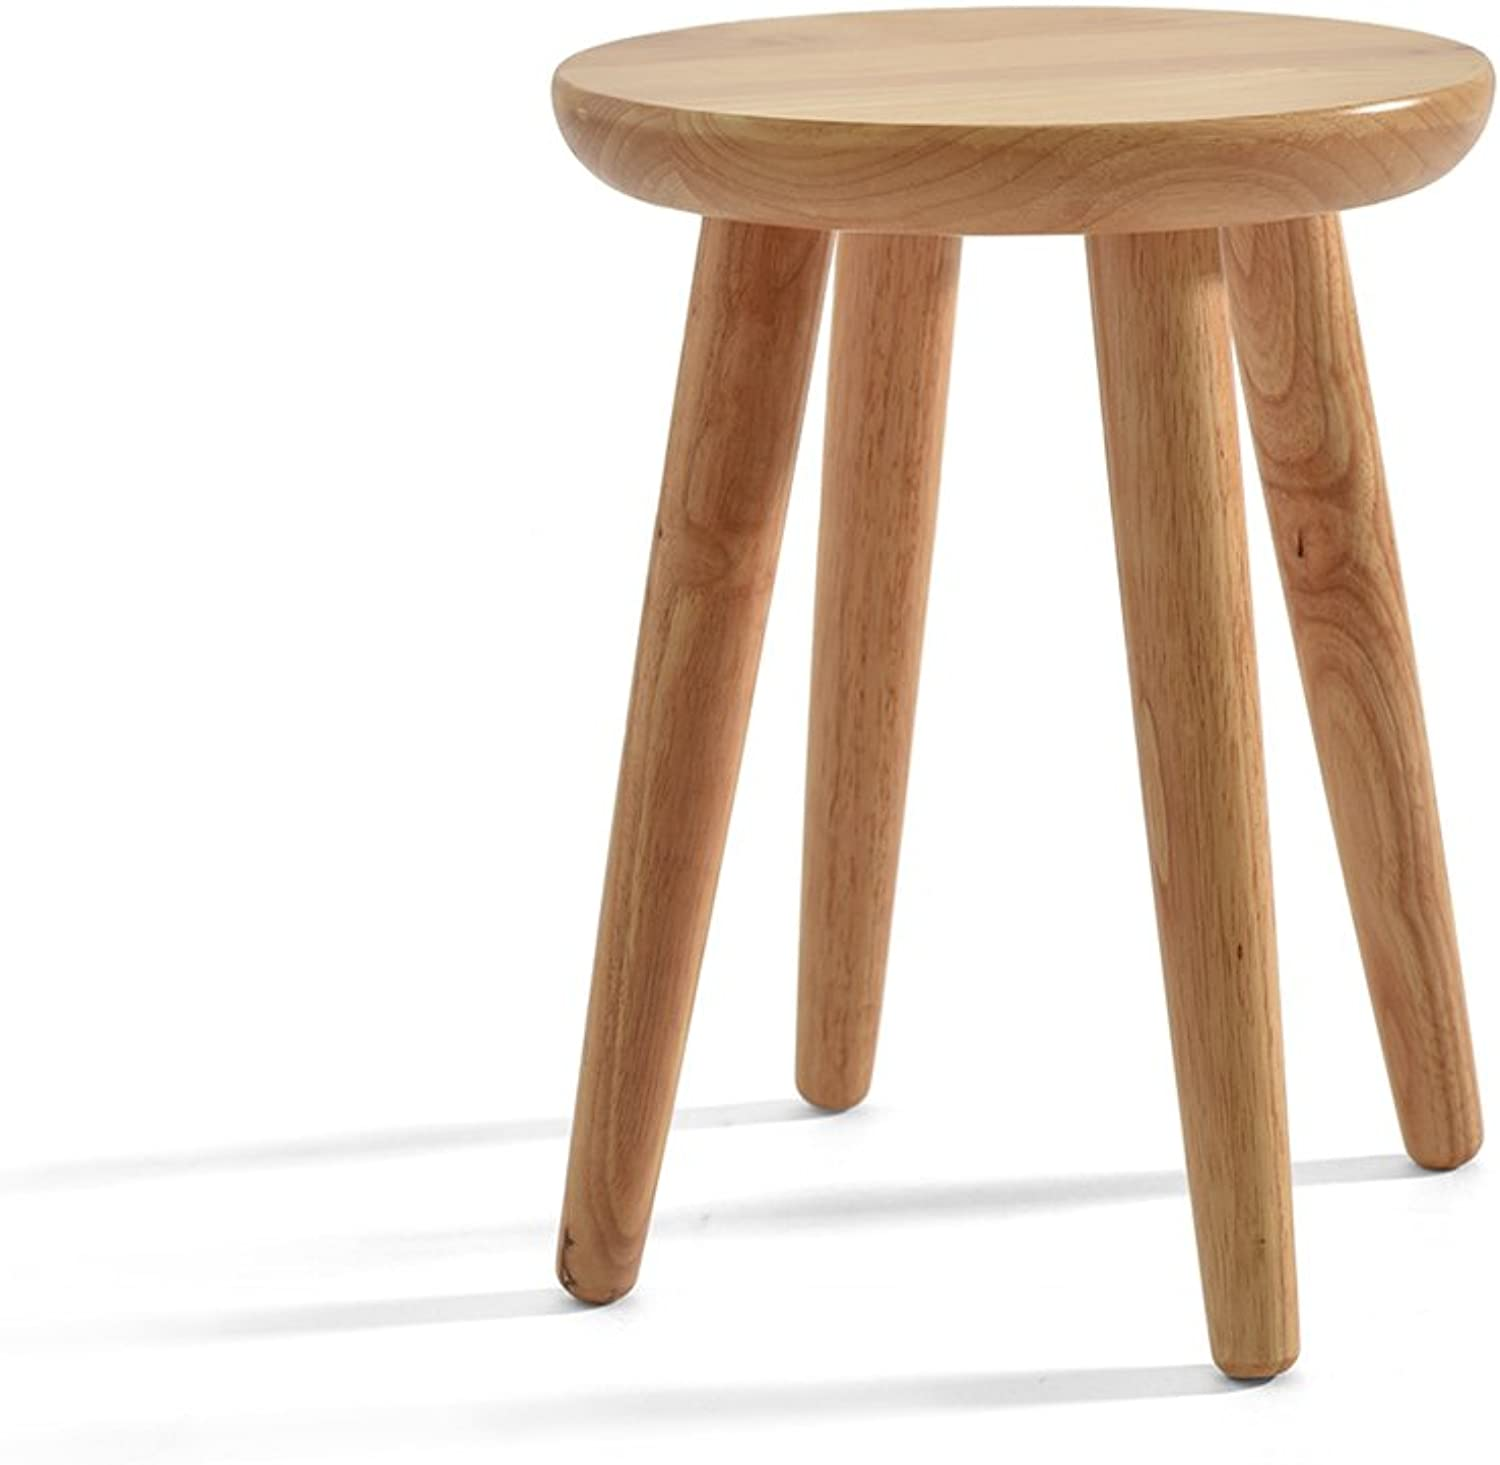 Footstool Solid Wood Stool Small Stool Table Stool Fashion Dining Stool Home Low Stool Dressing Stool Household Low Pouffe Sofa Stool for Kids with Wooden Leg (color   Large)